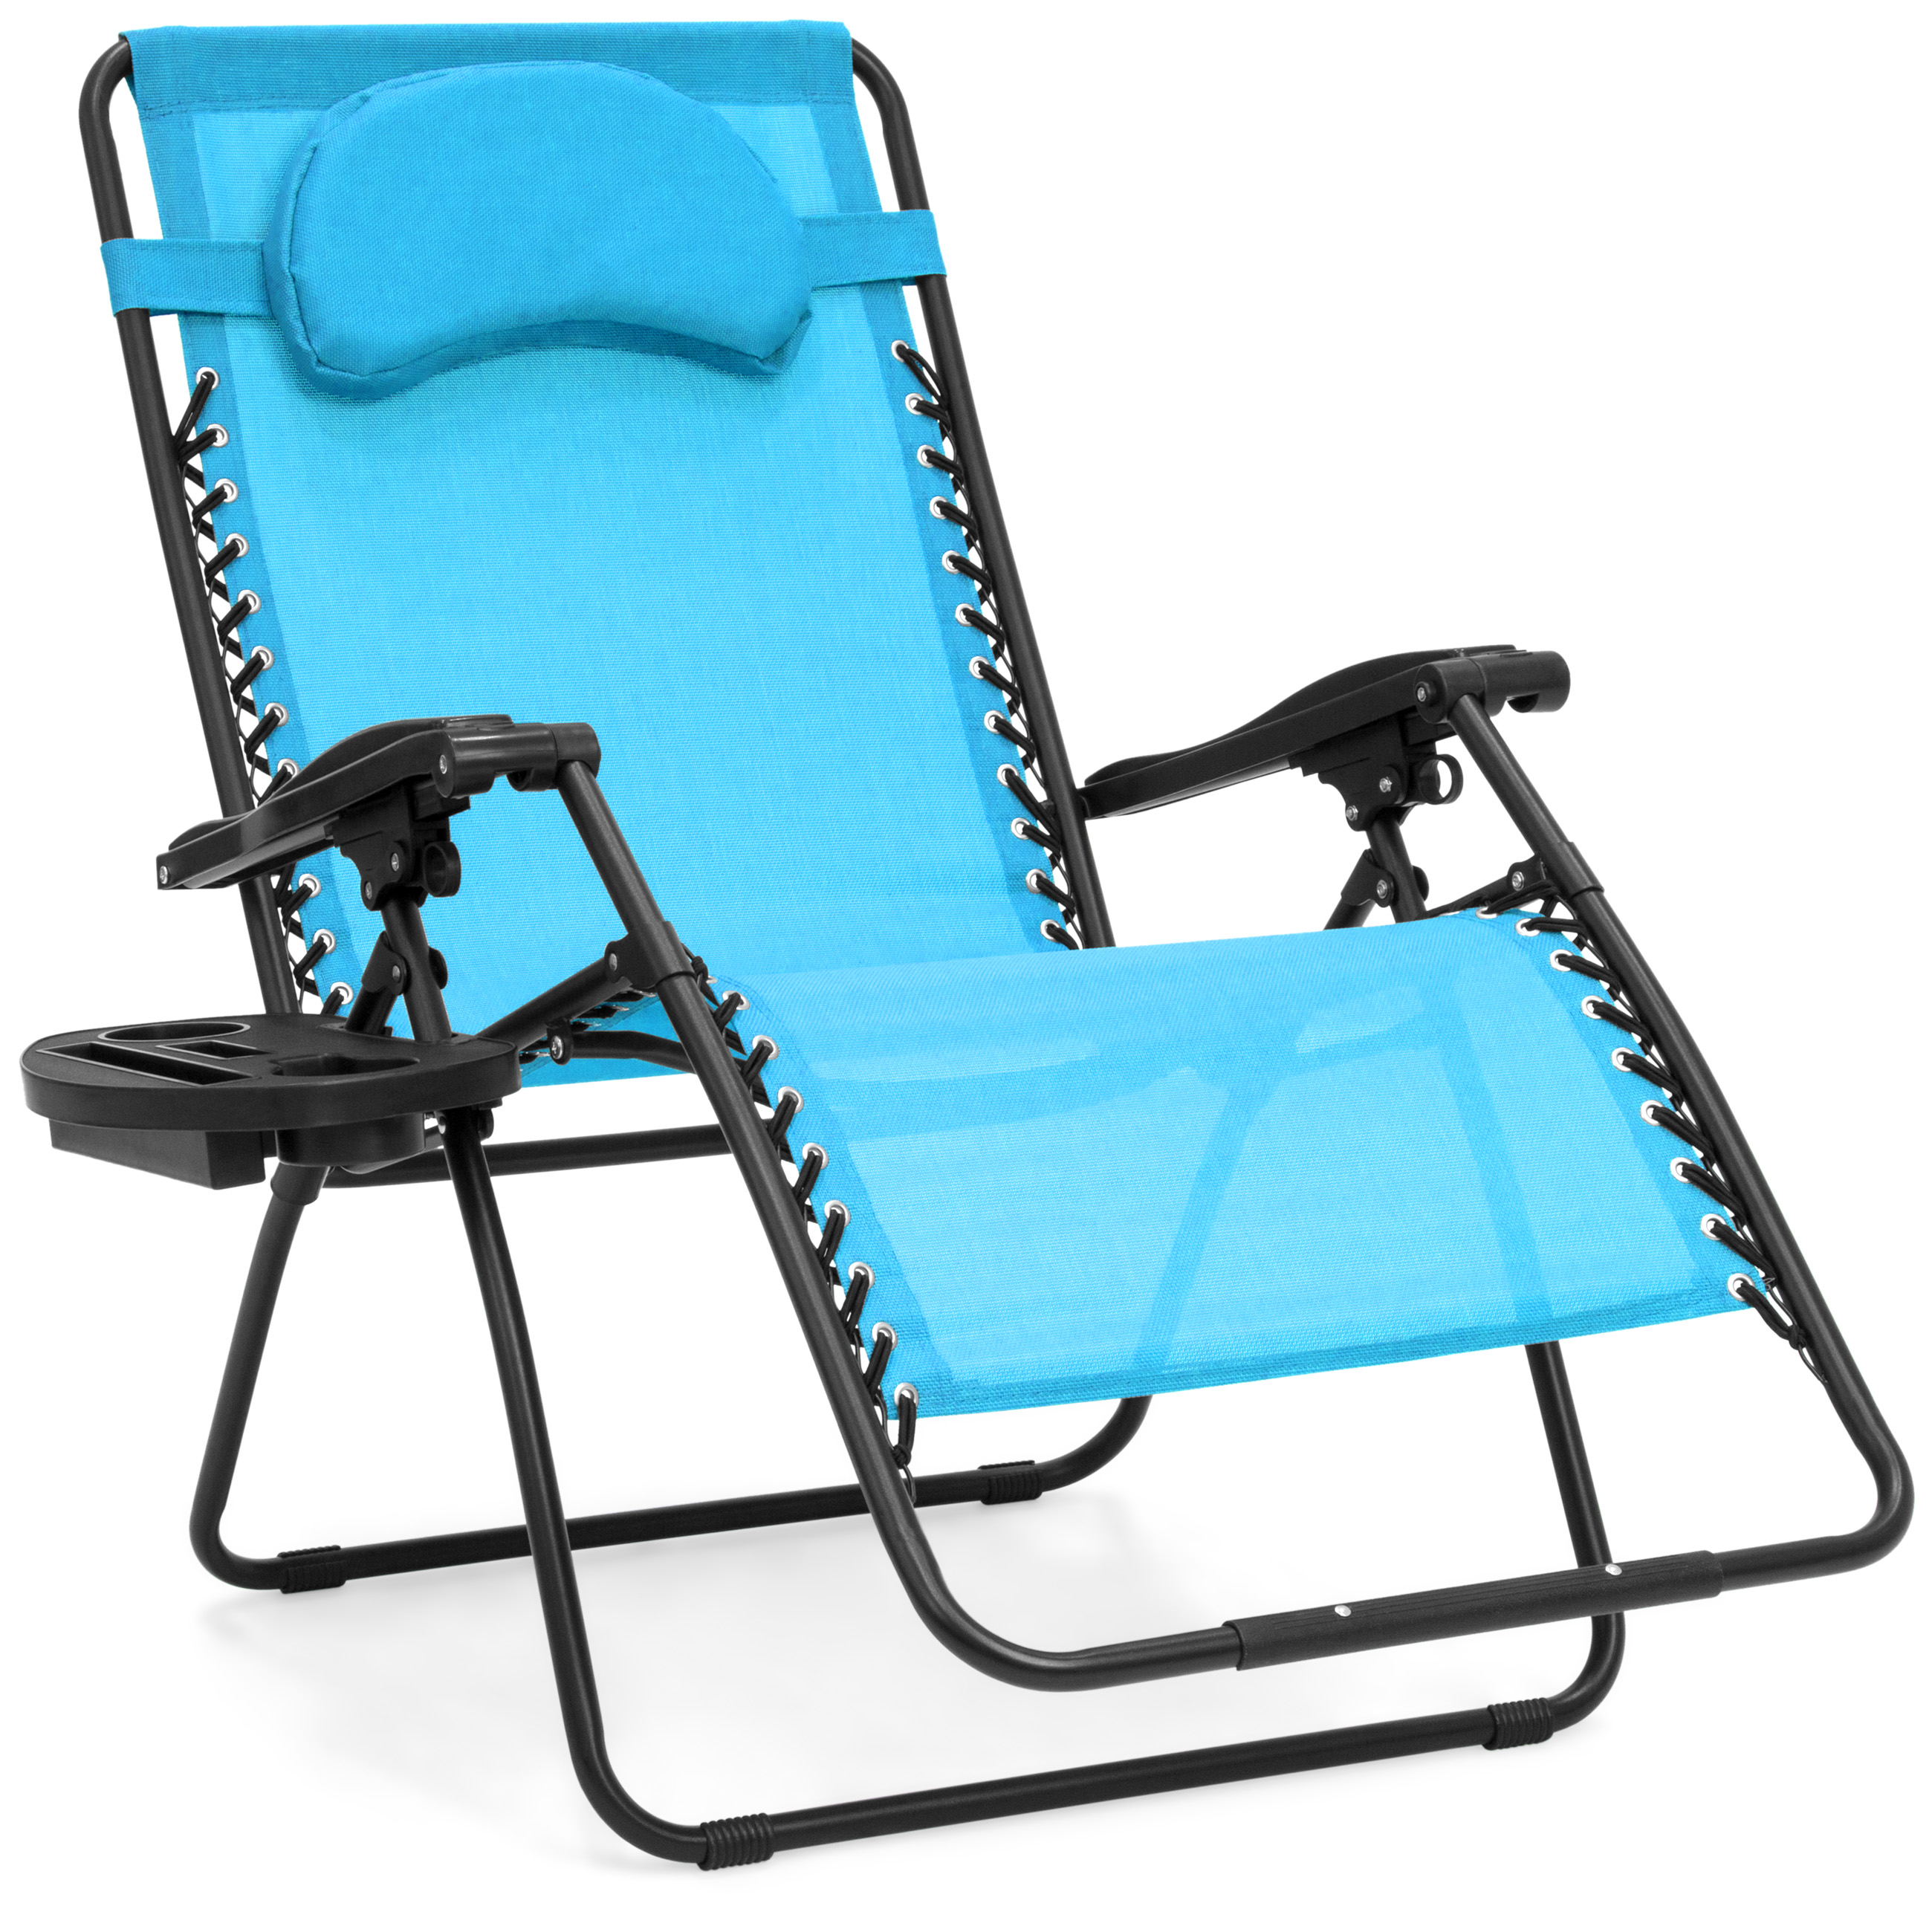 BCP Oversize Zero Gravity Outdoor Reclining Lounge Patio Chairs w/ Cup Holder